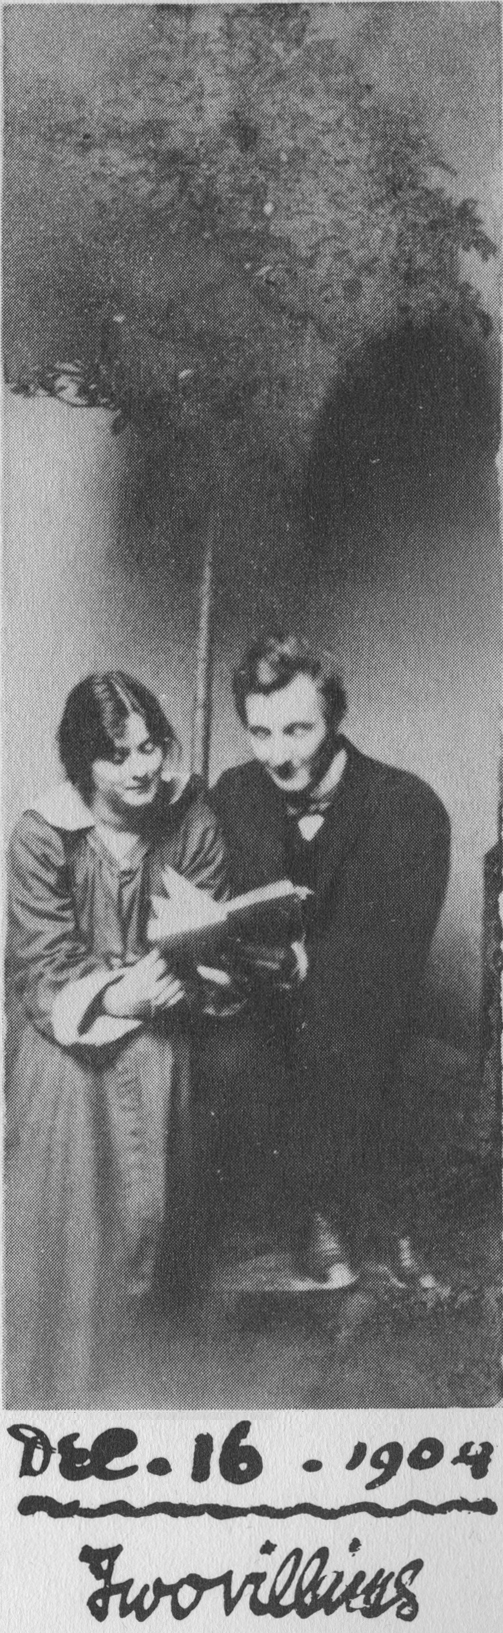 Two Villains – Isadora Duncan and Gordon Craig, Berlin 16 December 1904